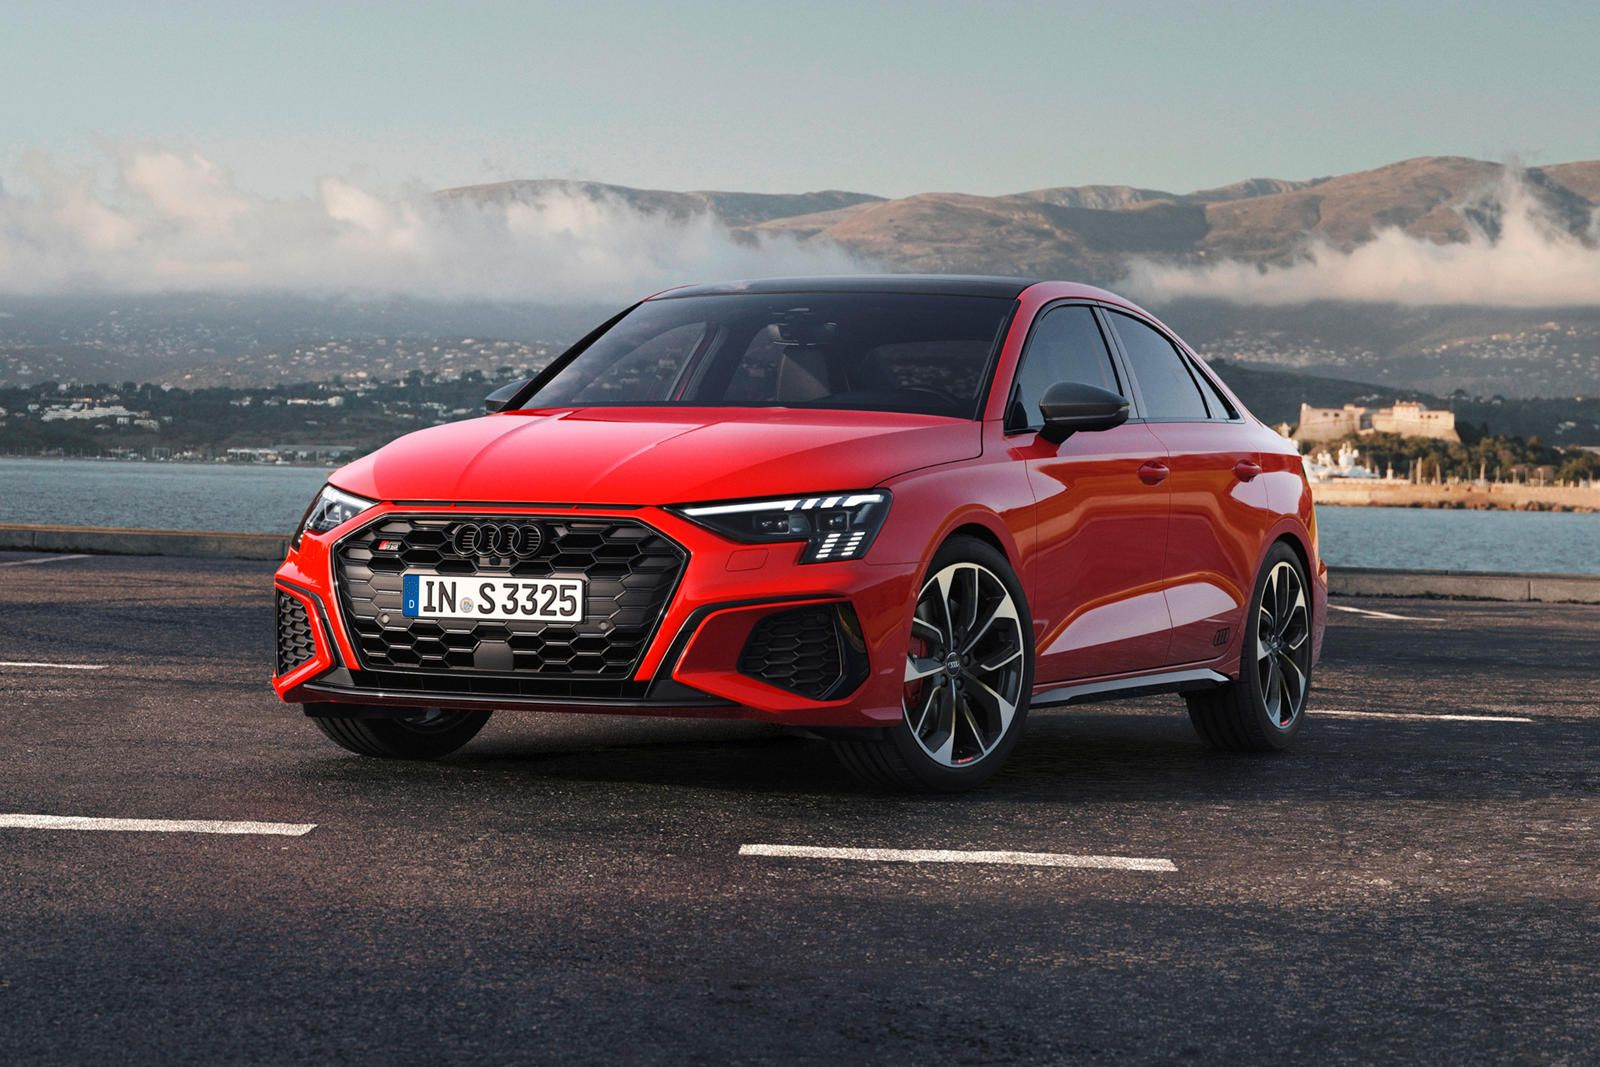 2021 Audi S3 First Look Review More Power And Attitude Audi Nails It With Its Entry Level Performance Sedan In 2020 Audi Sedan Exterior Design